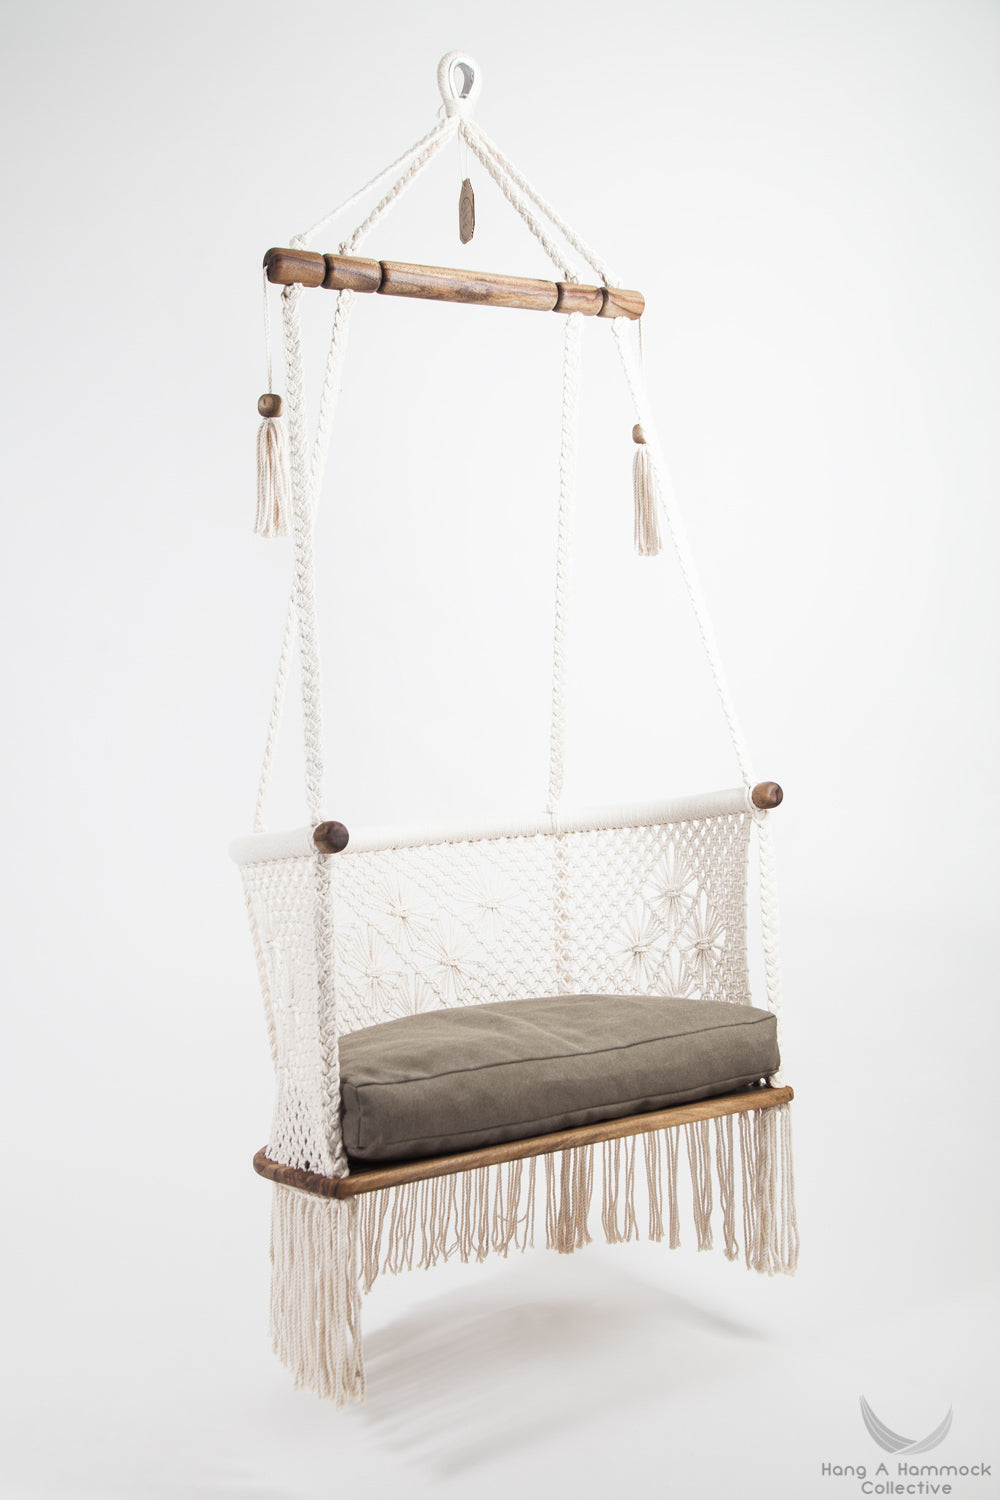 hanging chair in wood and cotton. with green cushion. studio photo. side view